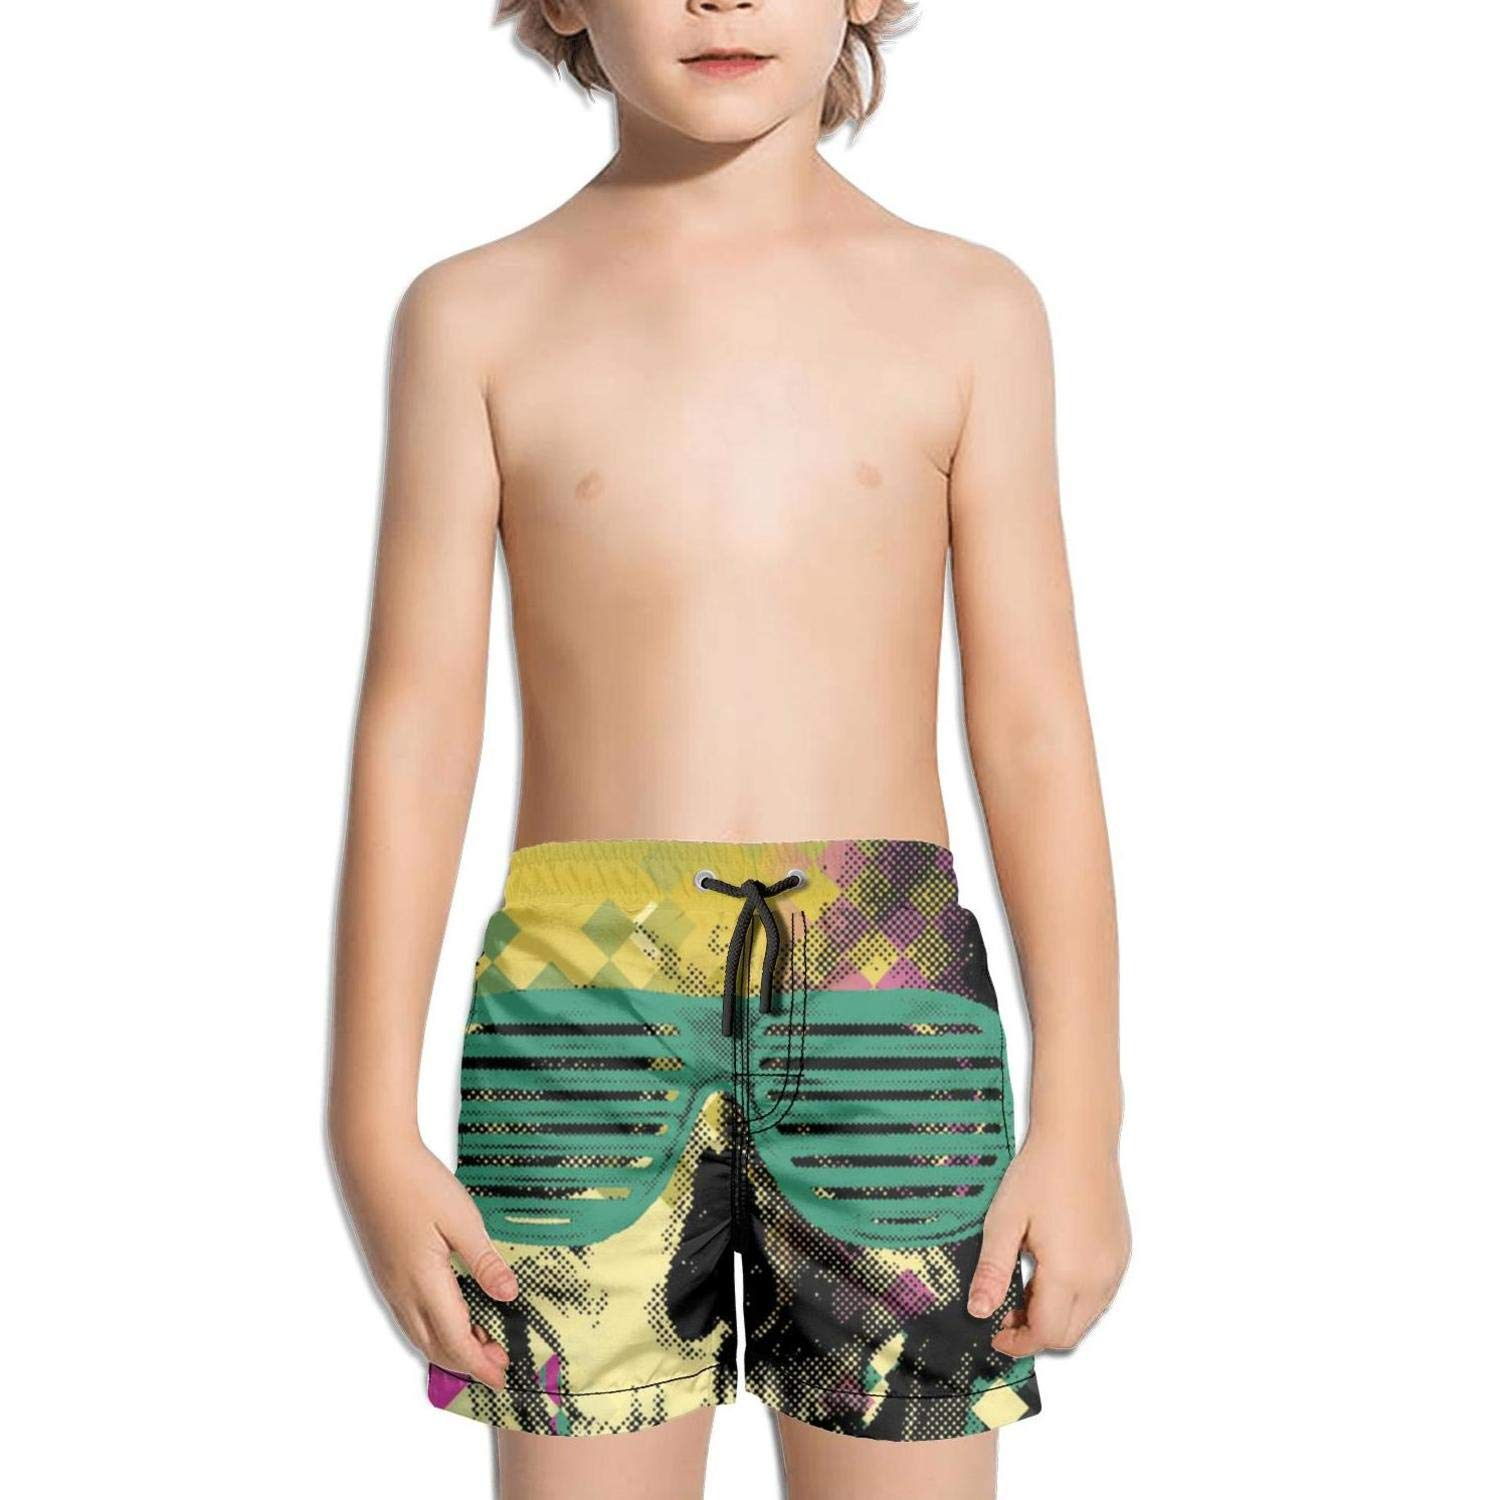 FullBo Vintage Skull Glasses Little Boy's Short Swim Trunks Quick Dry Beach Shorts